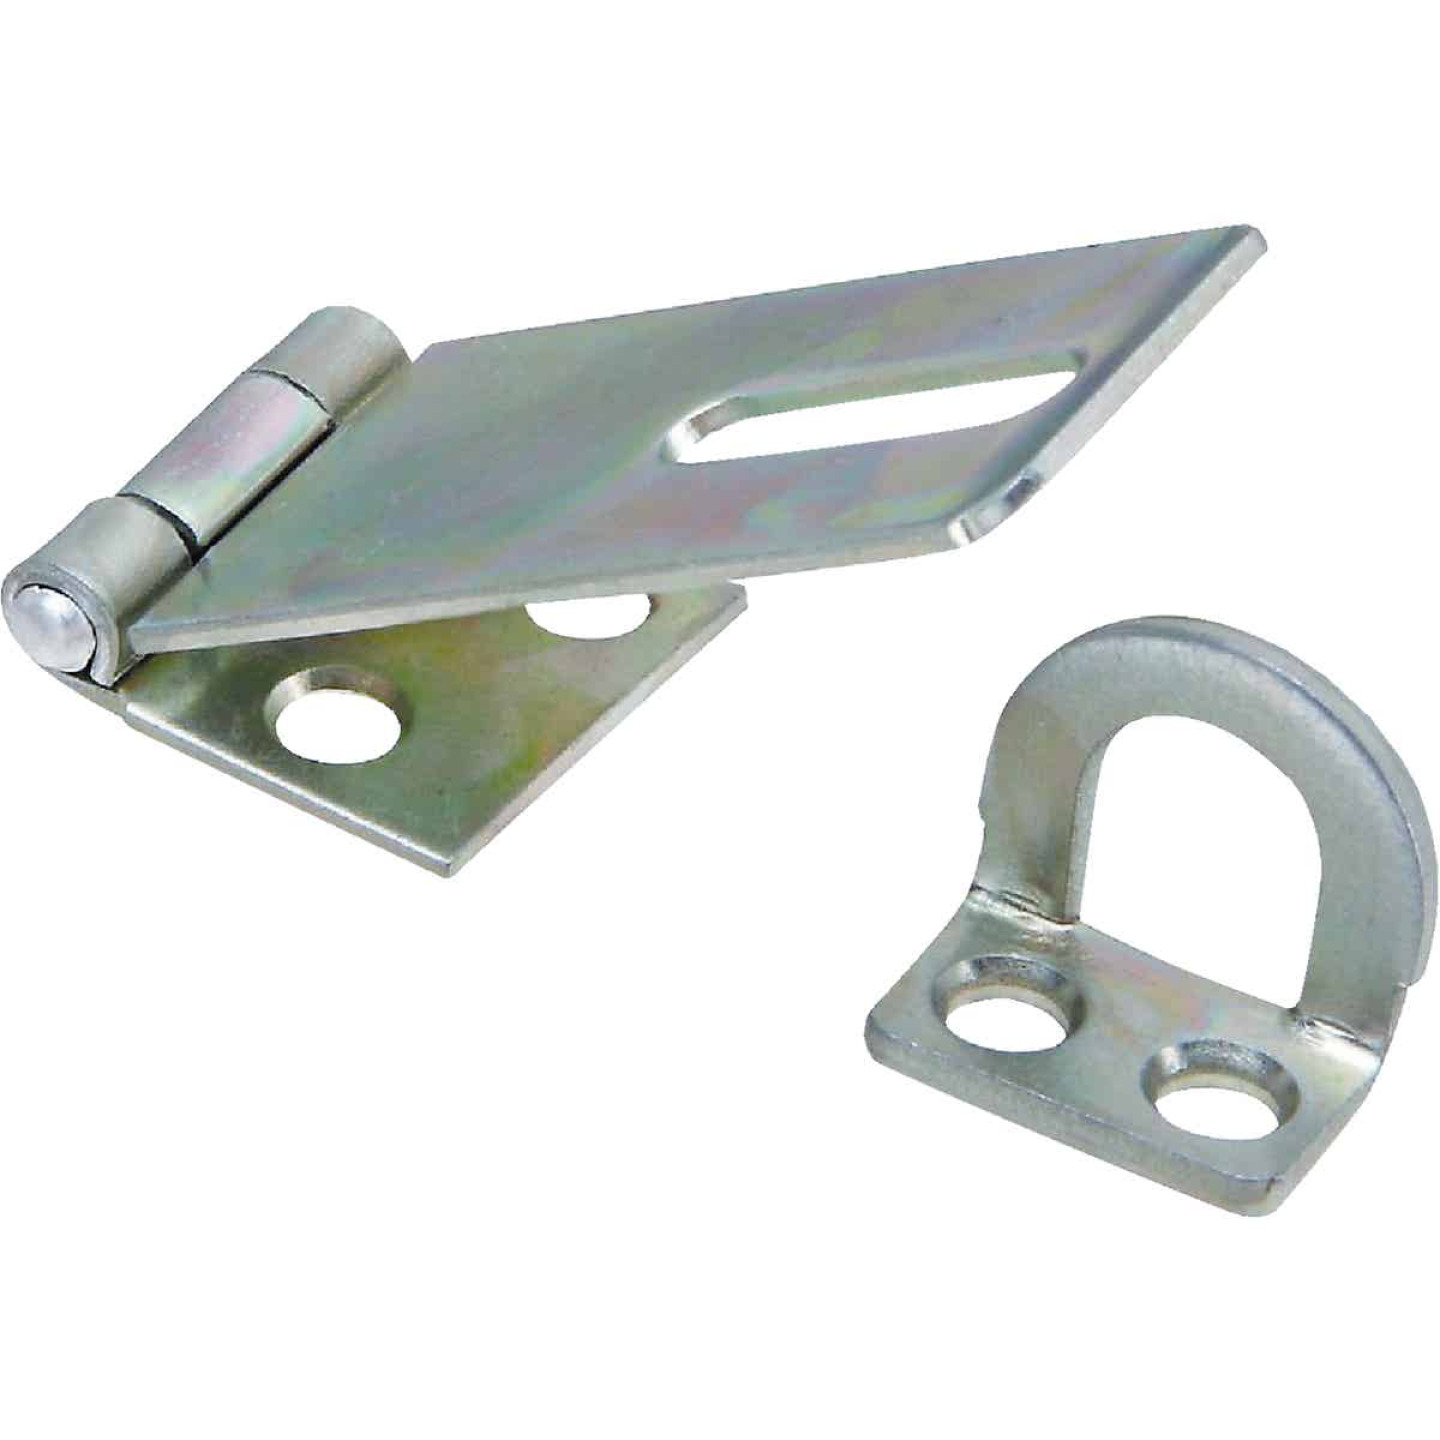 National 1-3/4 In. Zinc Non-Swivel Safety Hasp Image 1